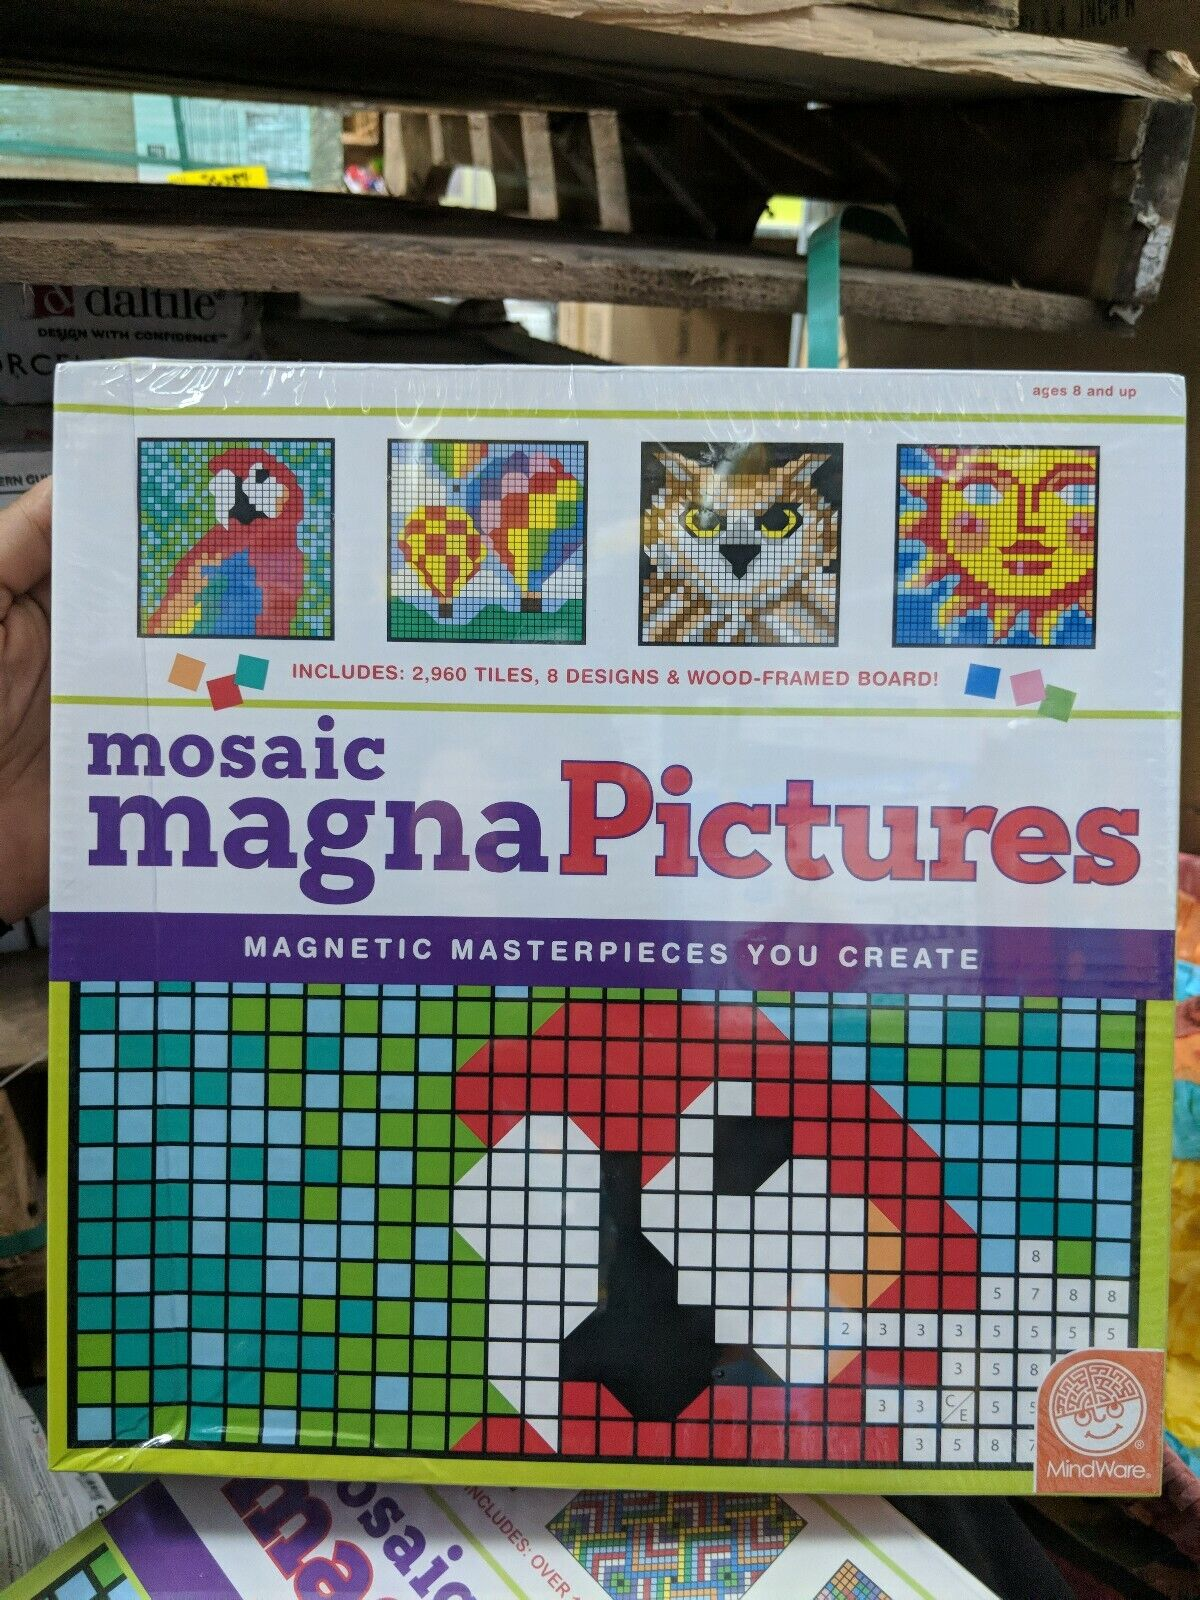 Mosaic Magna Pictures Masterpieces You Create (New in Plastic, Some Denting)